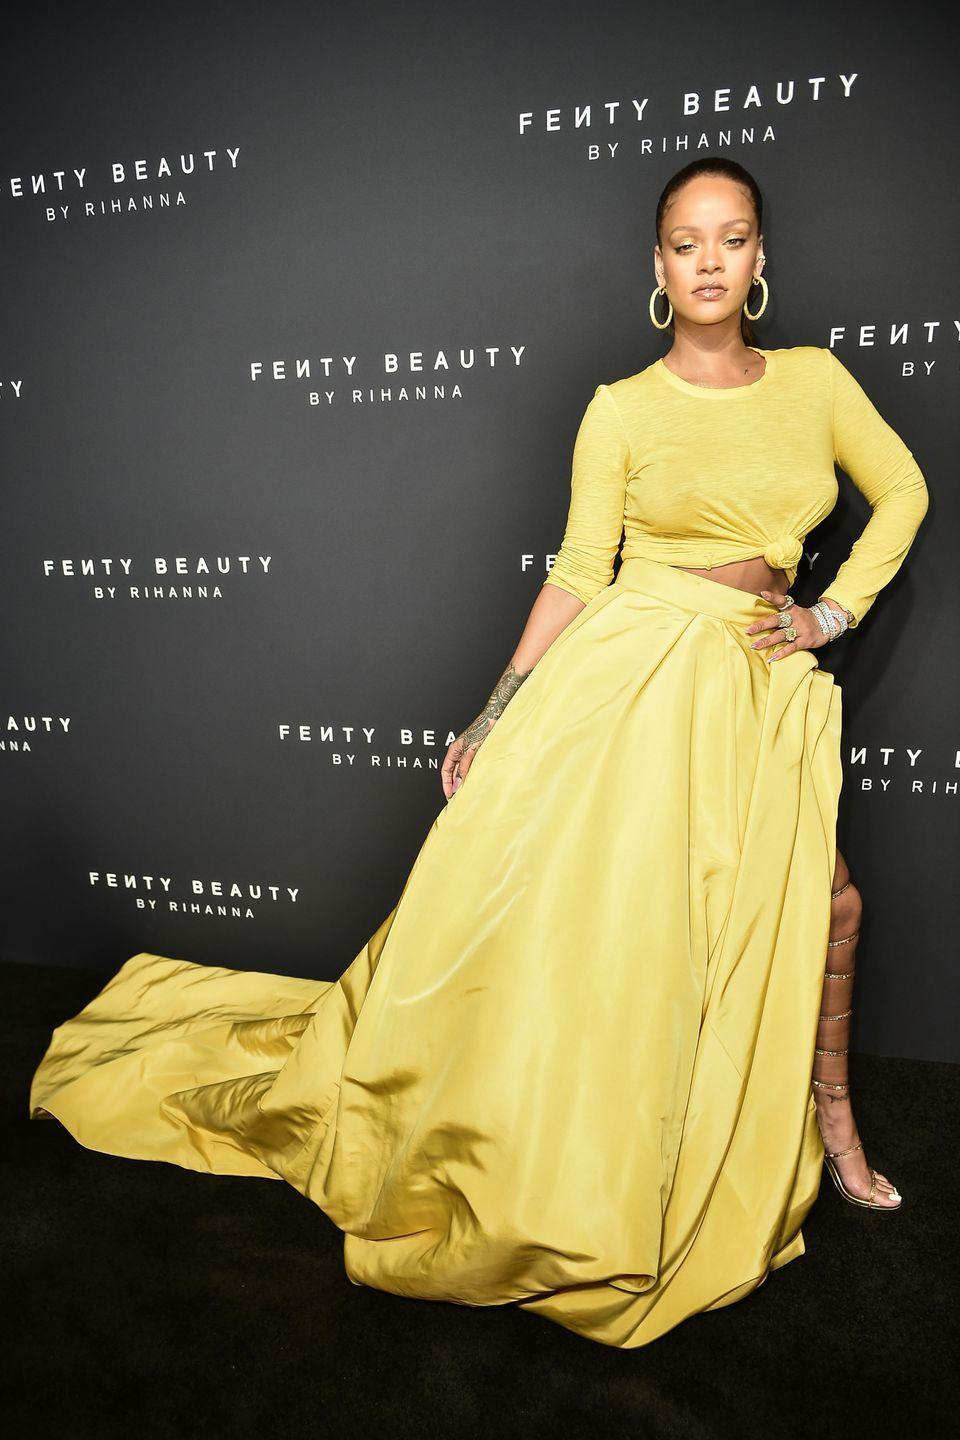 <p>In custom Oscar de la Renta, Chopard jewels and René Caovilla shoes at the Fenty Beauty launch in NYC.</p>